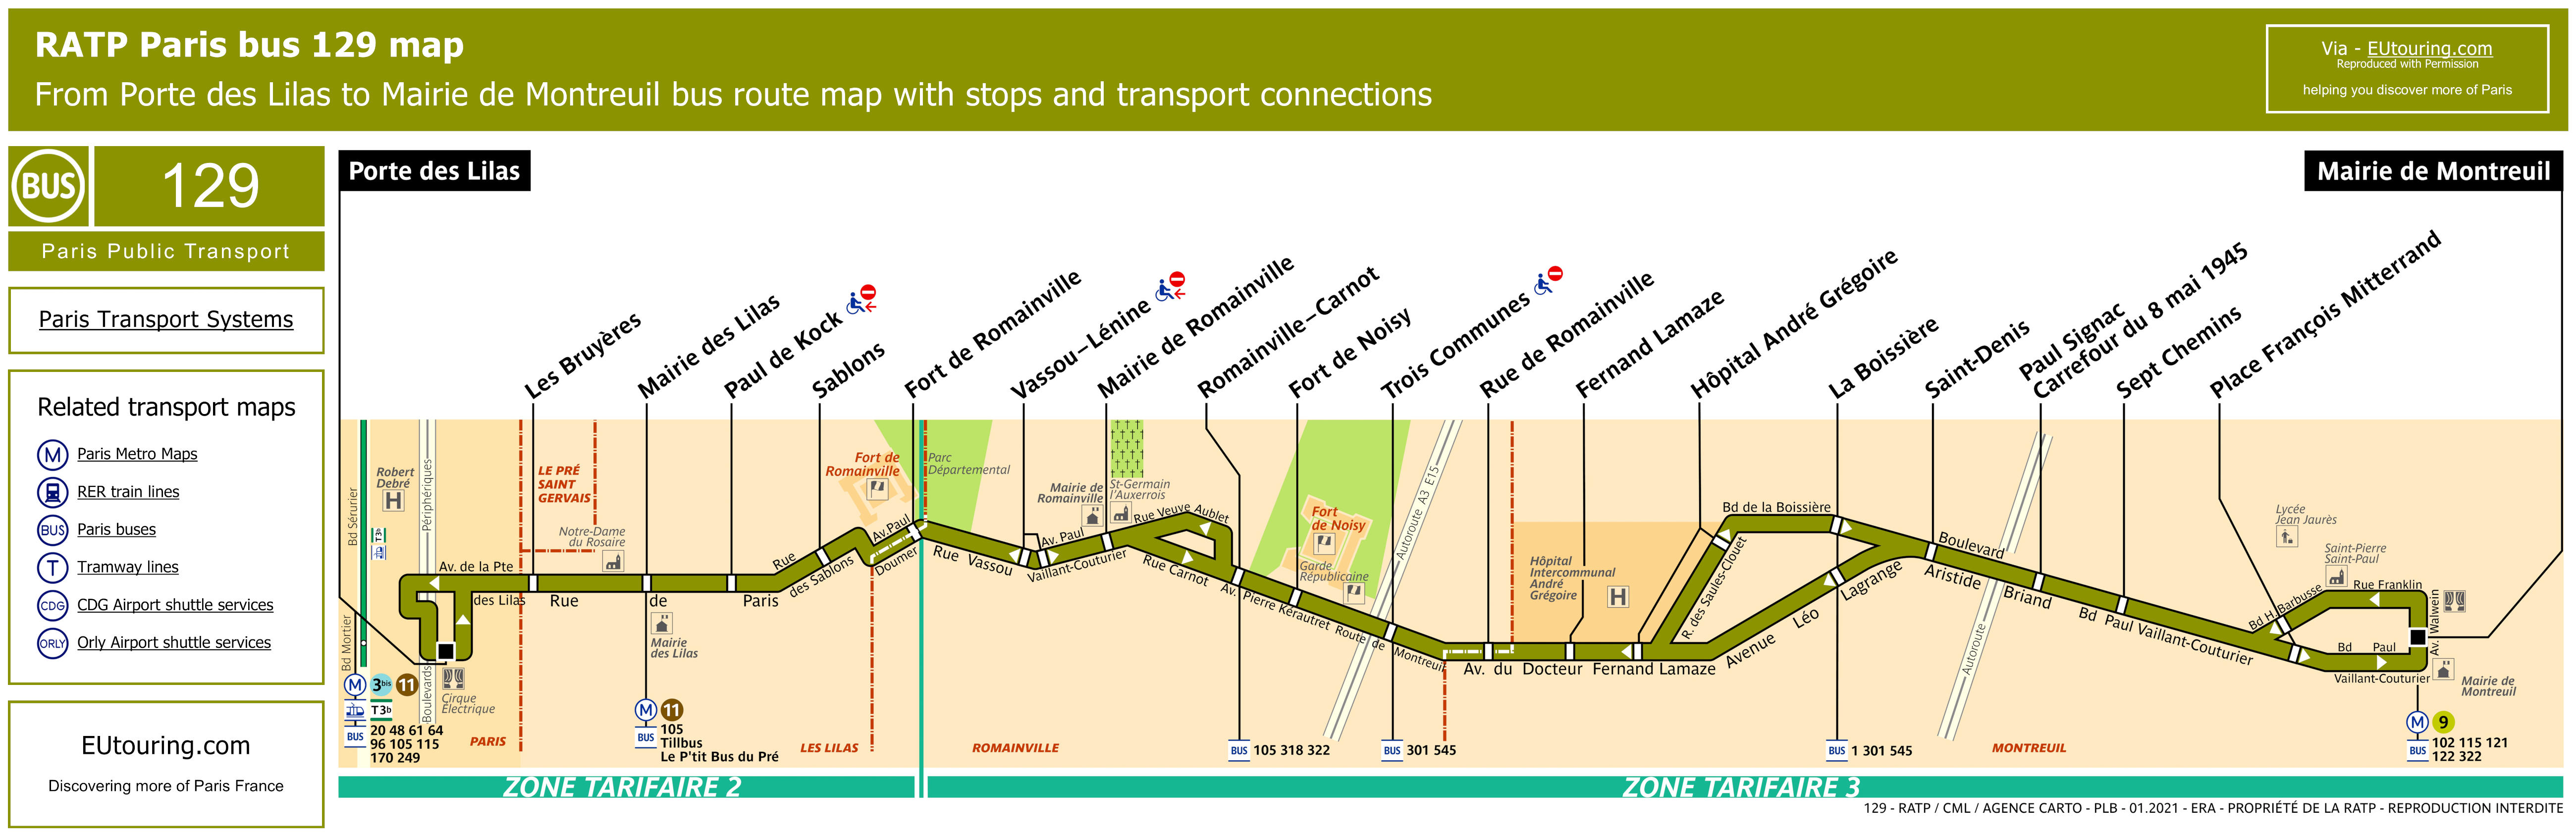 RATP Route Maps For Paris Bus Lines Through To - Map of us hwy 129